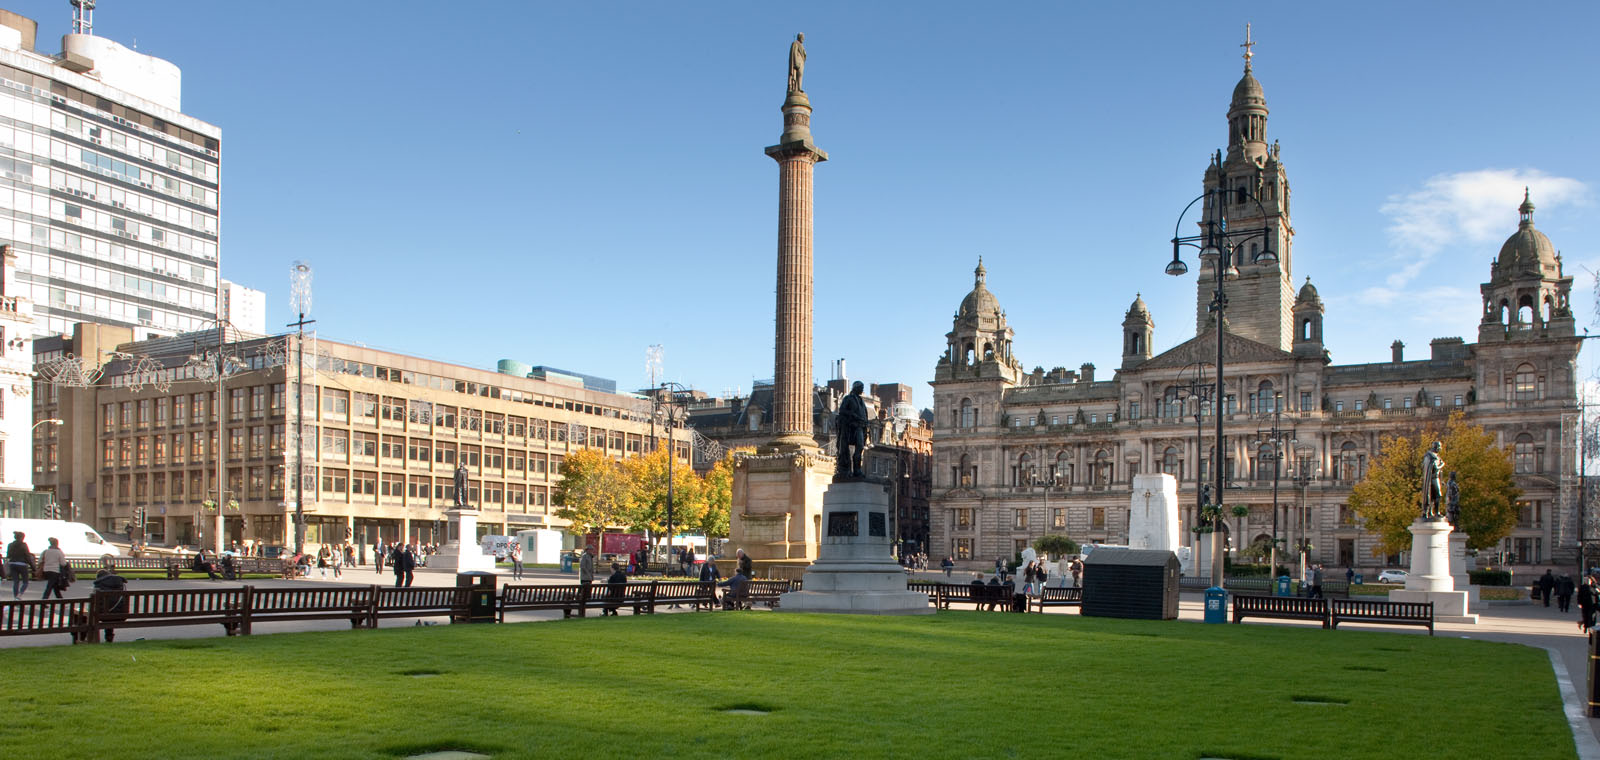 George Square, the heart of Glasgow